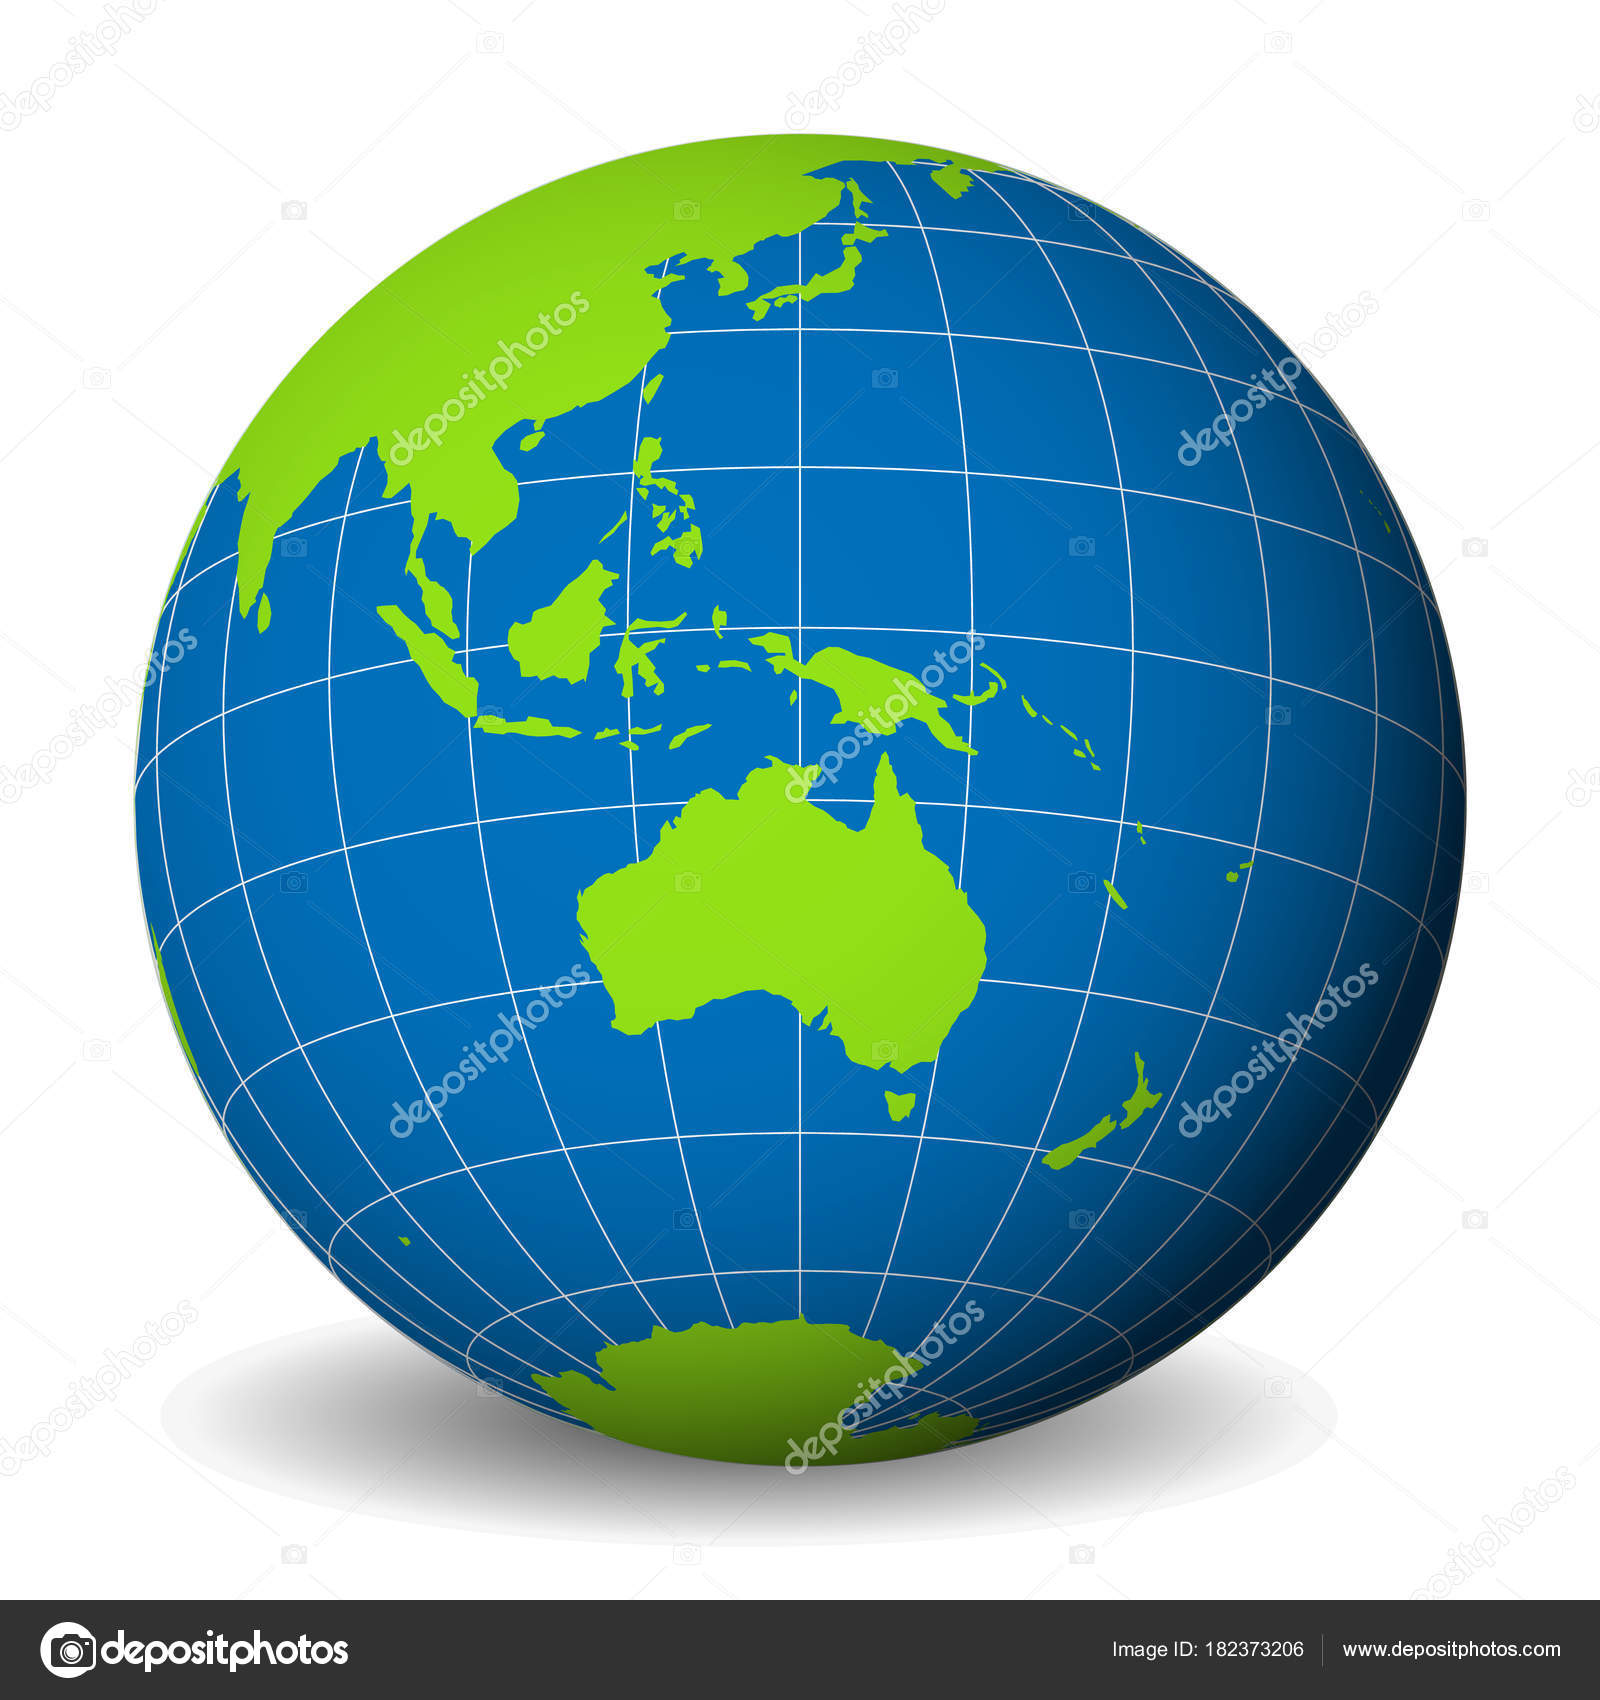 earth globe with green world map and blue seas and oceans focused on australia with